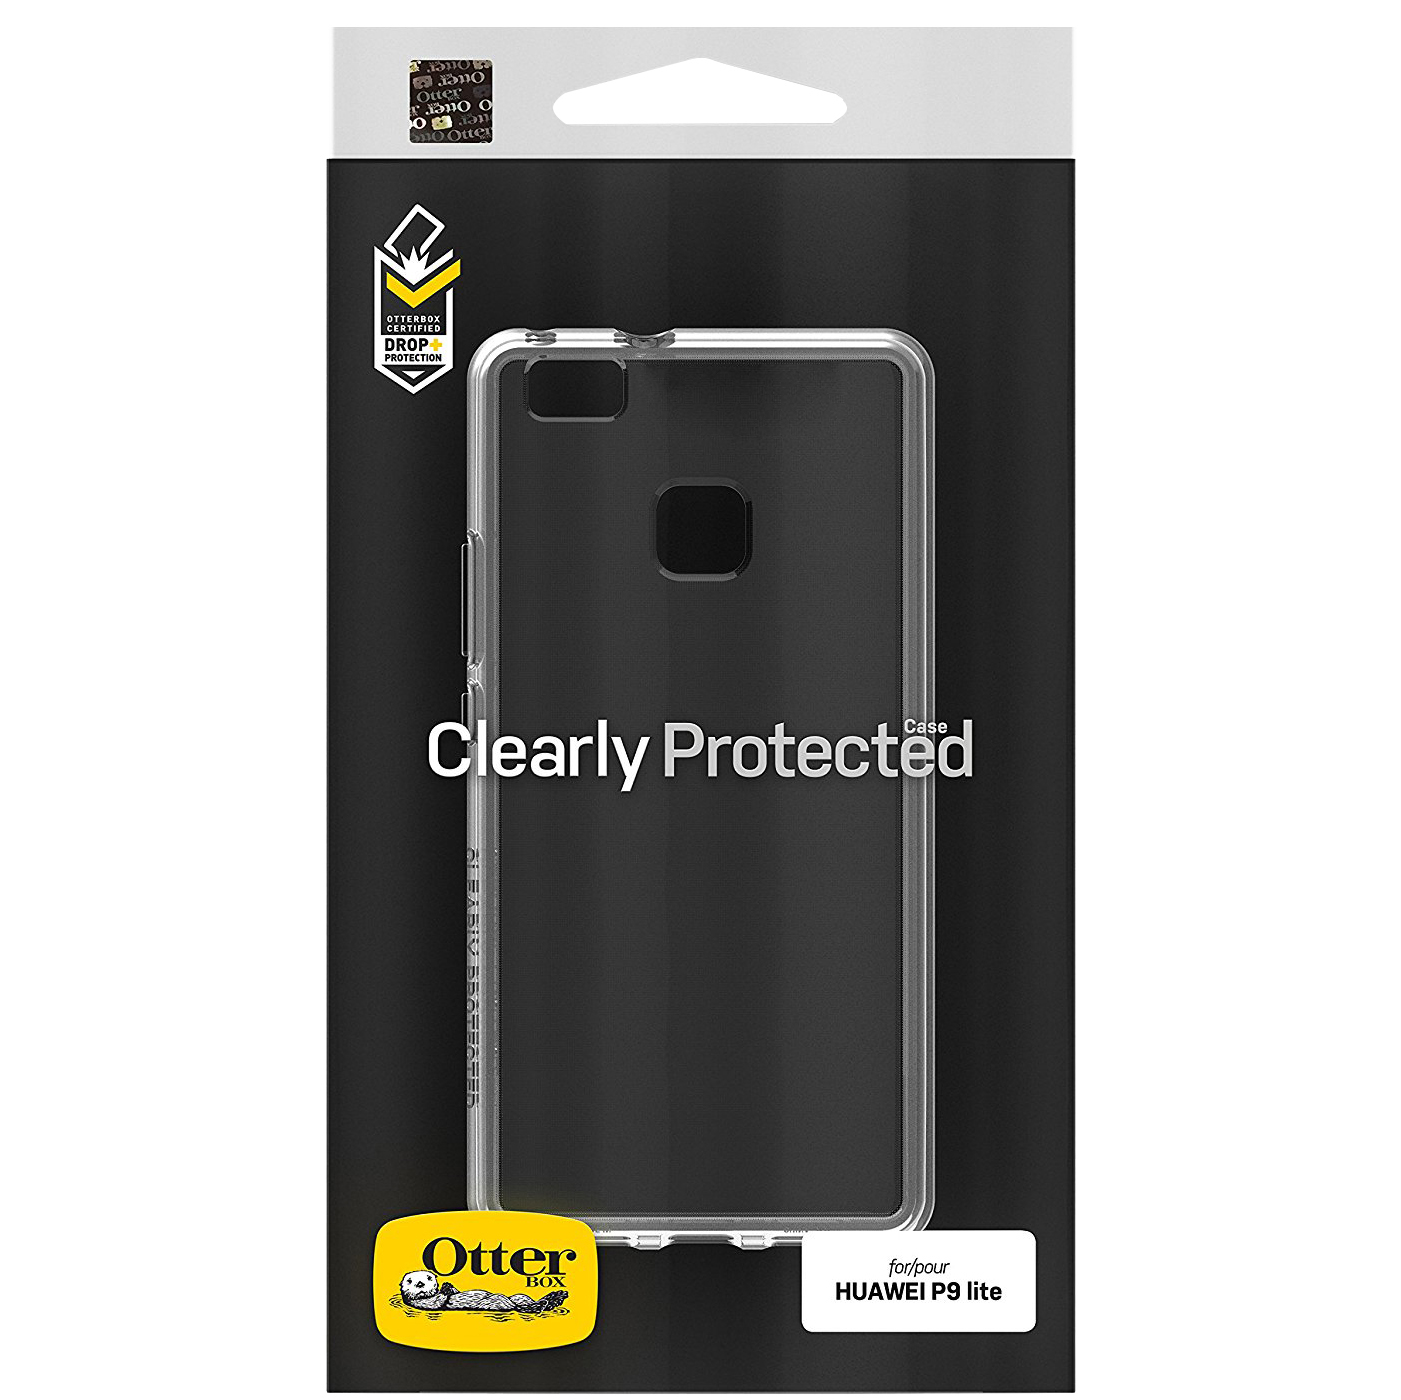 Etui OtterBox Clearly Protected Case do Huawei P9 lite, przezroczyste.